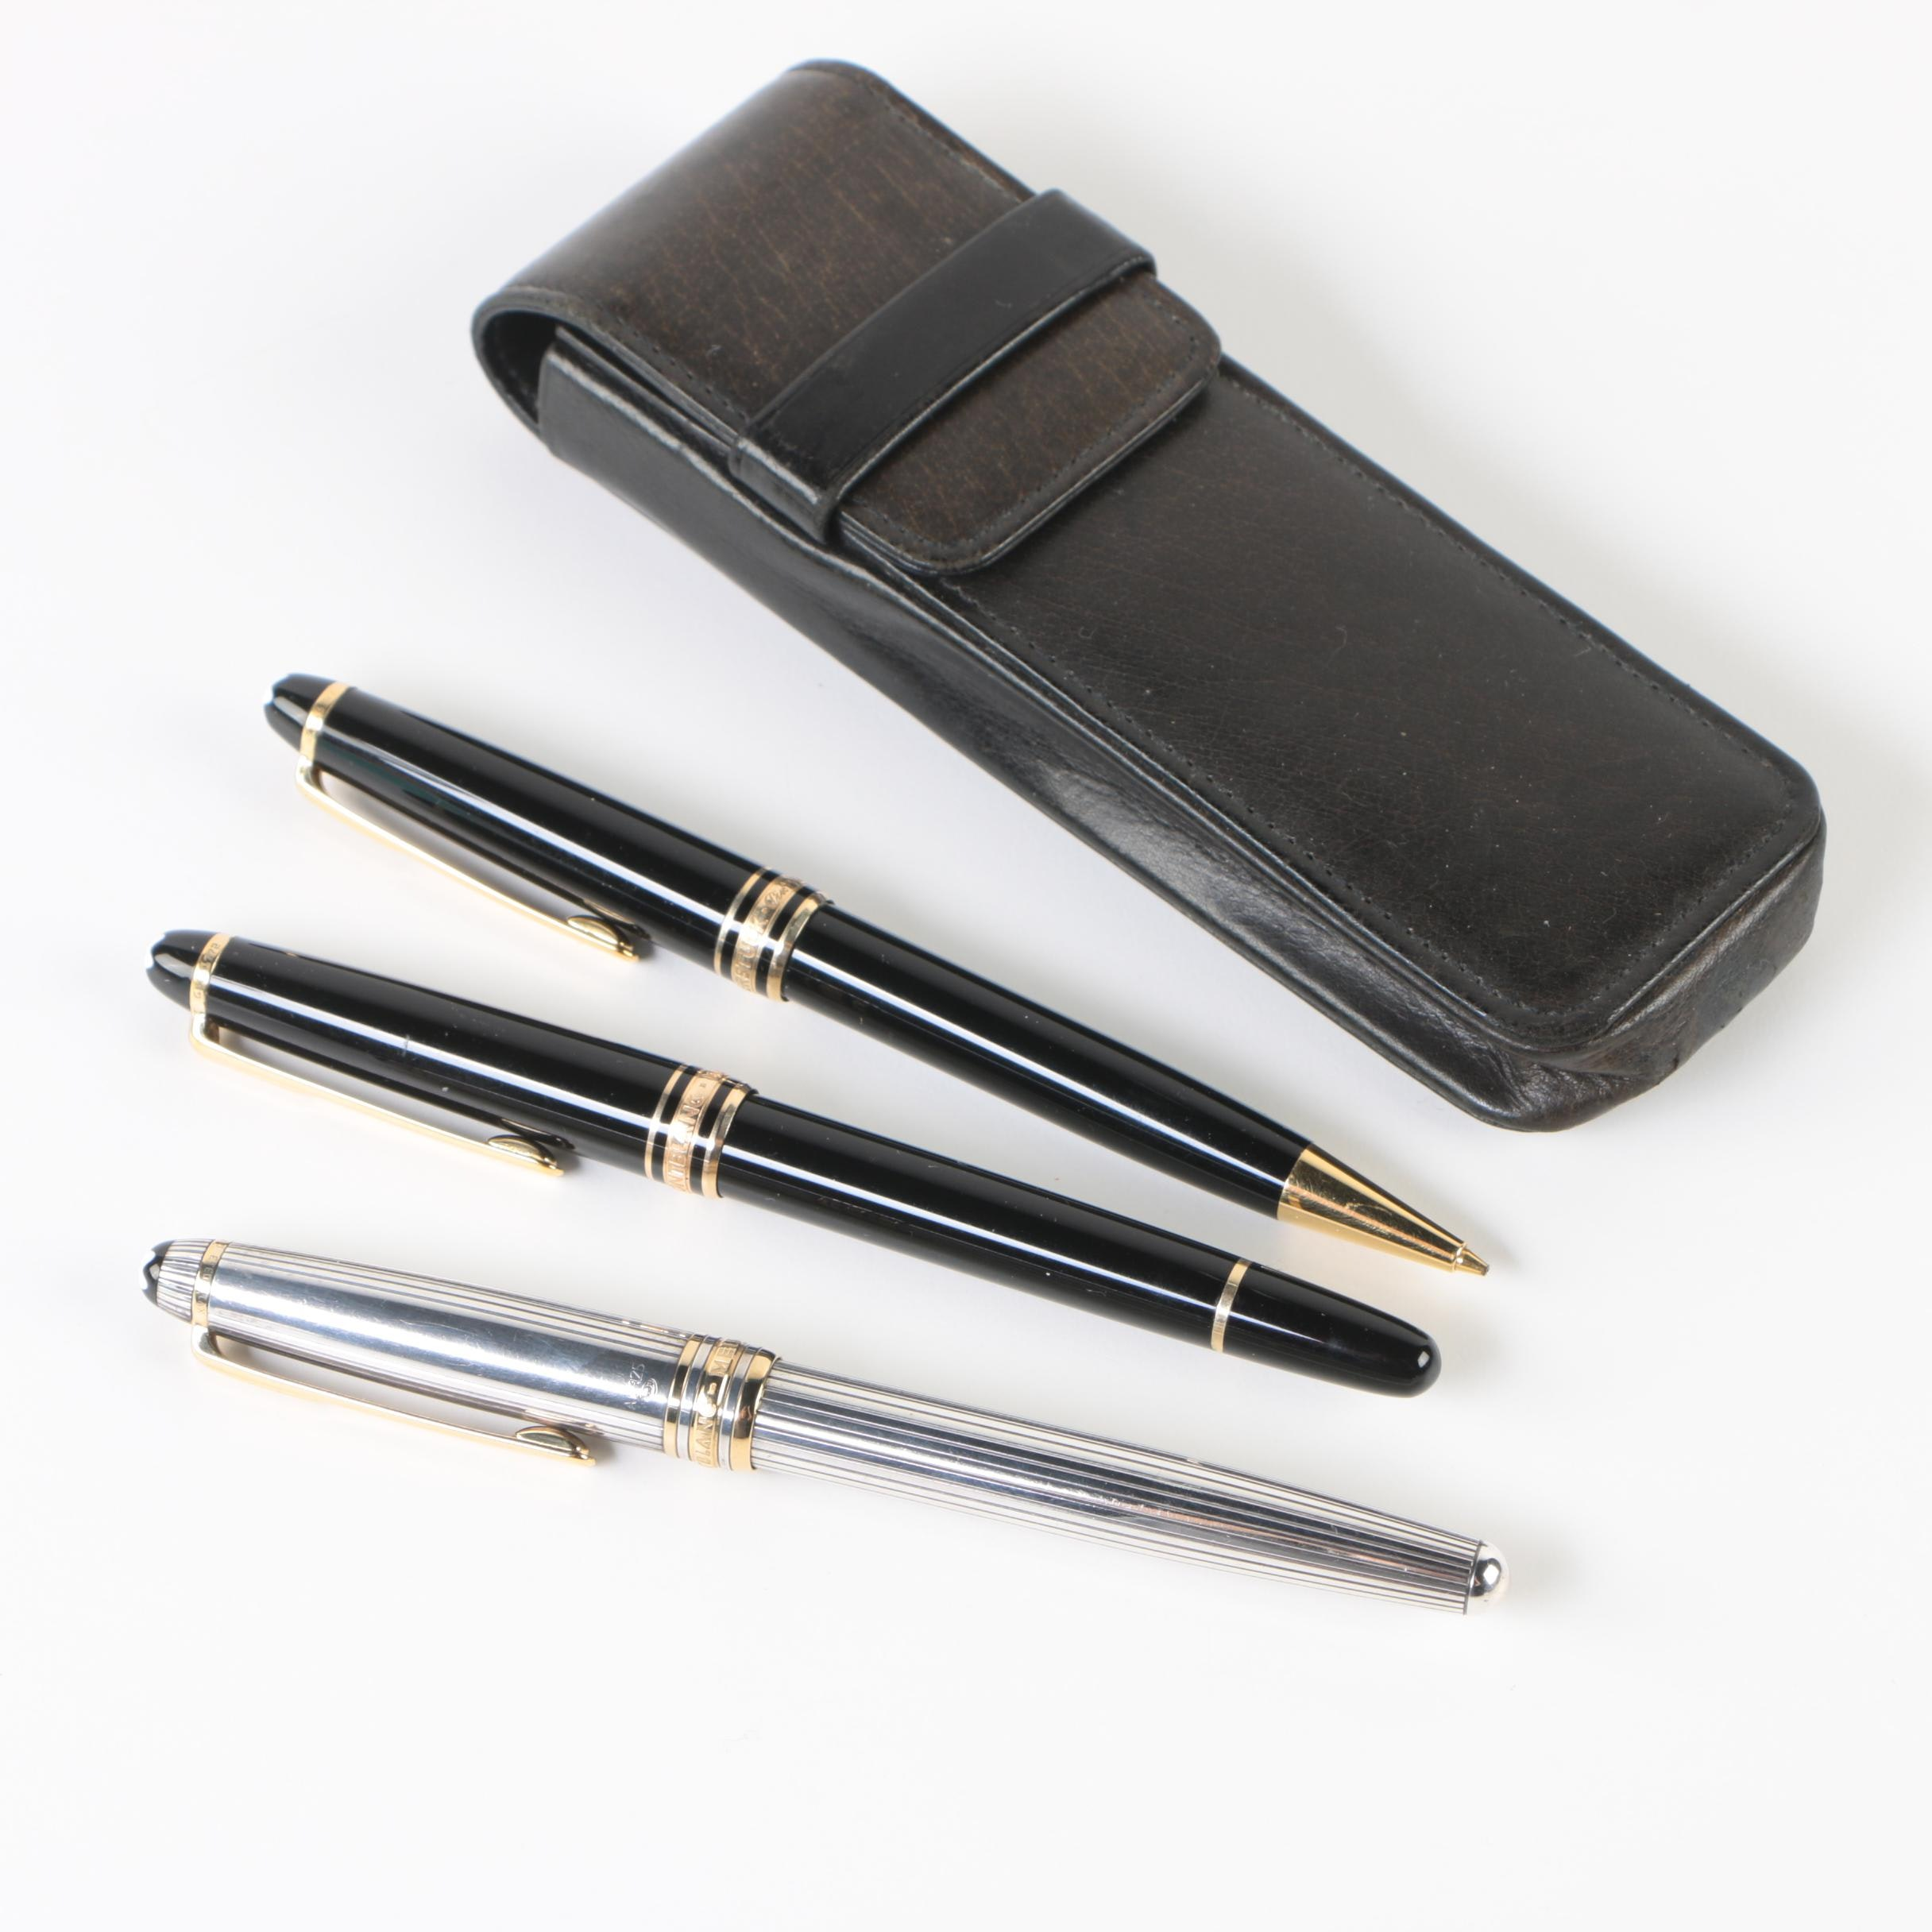 Montblanc Meisterstück Ballpoint Pens featuring Sterling Silver and Coach Case